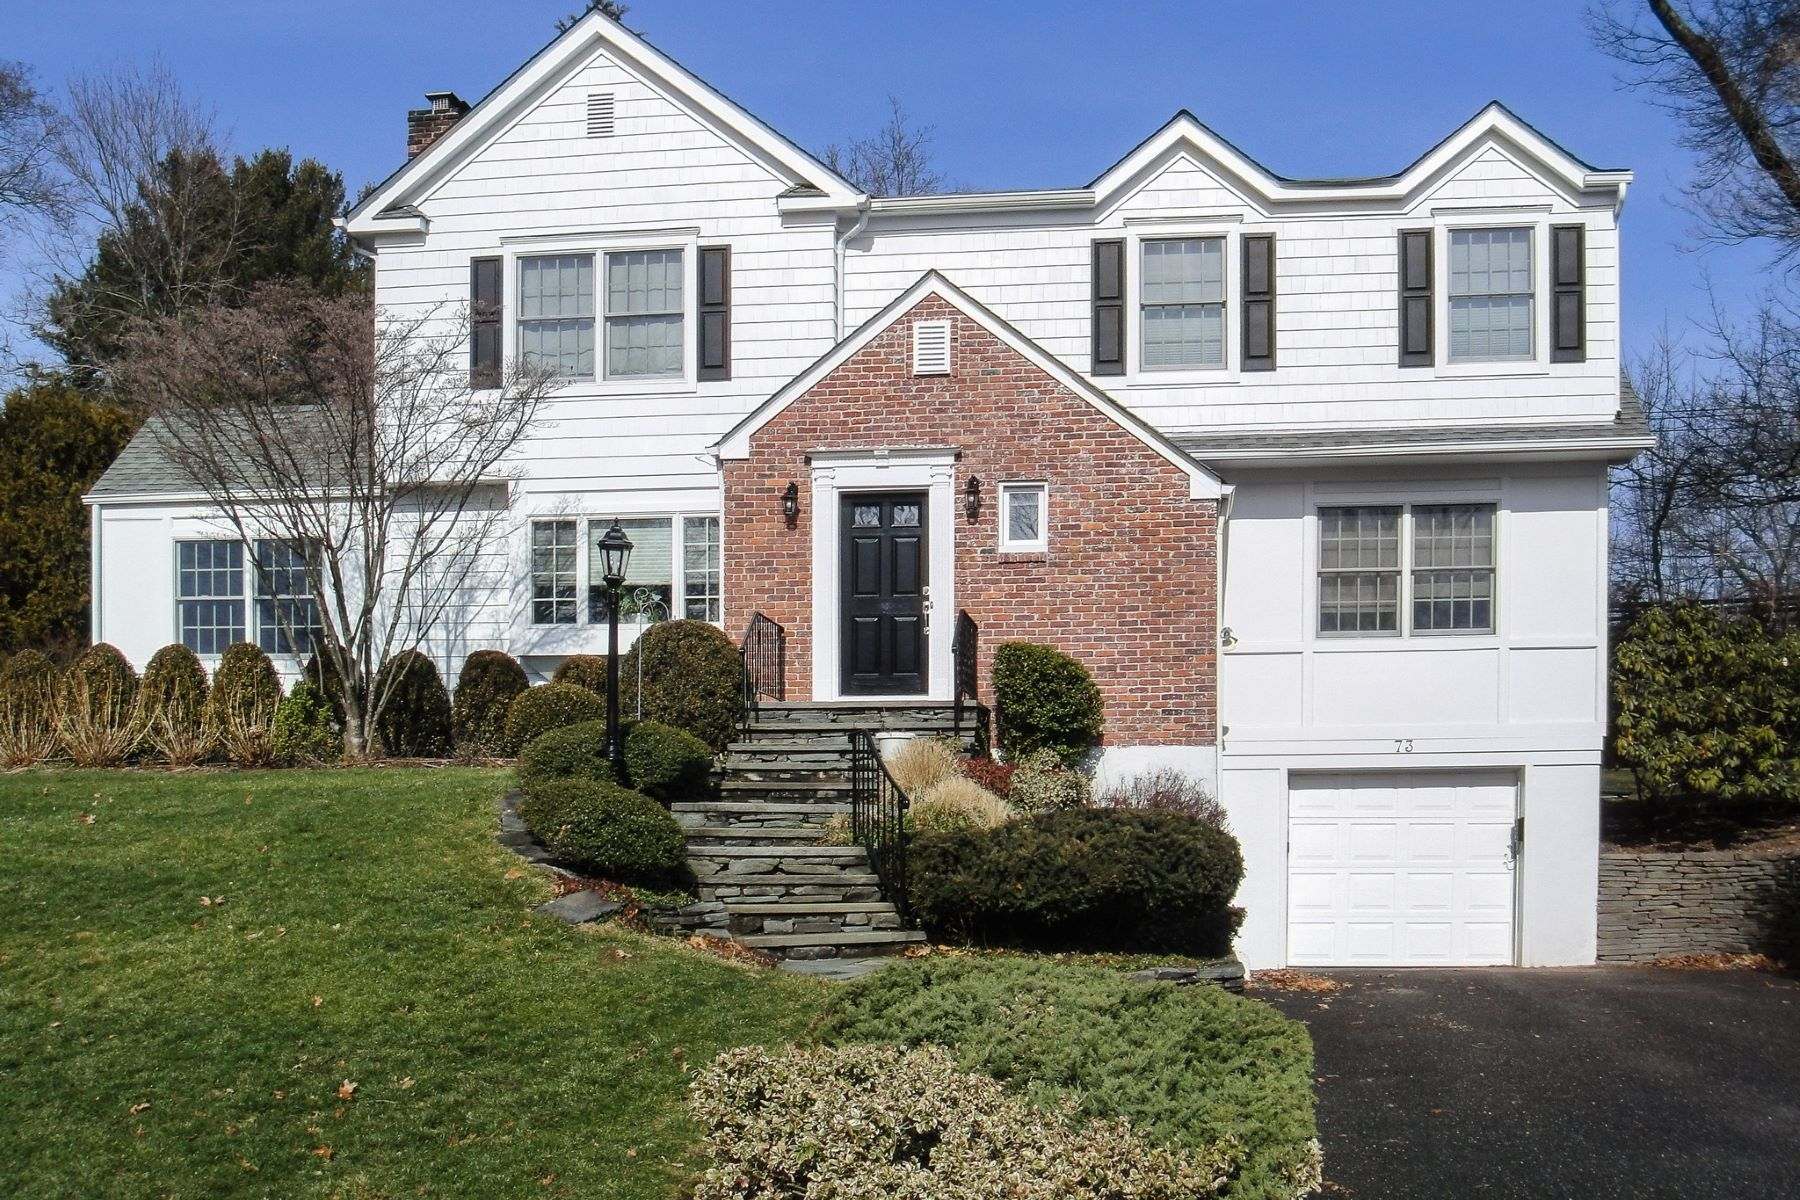 Single Family Home for Sale at 73 Revere Rd , East Hills, NY 11577 73 Revere Rd, East Hills, New York, 11577 United States